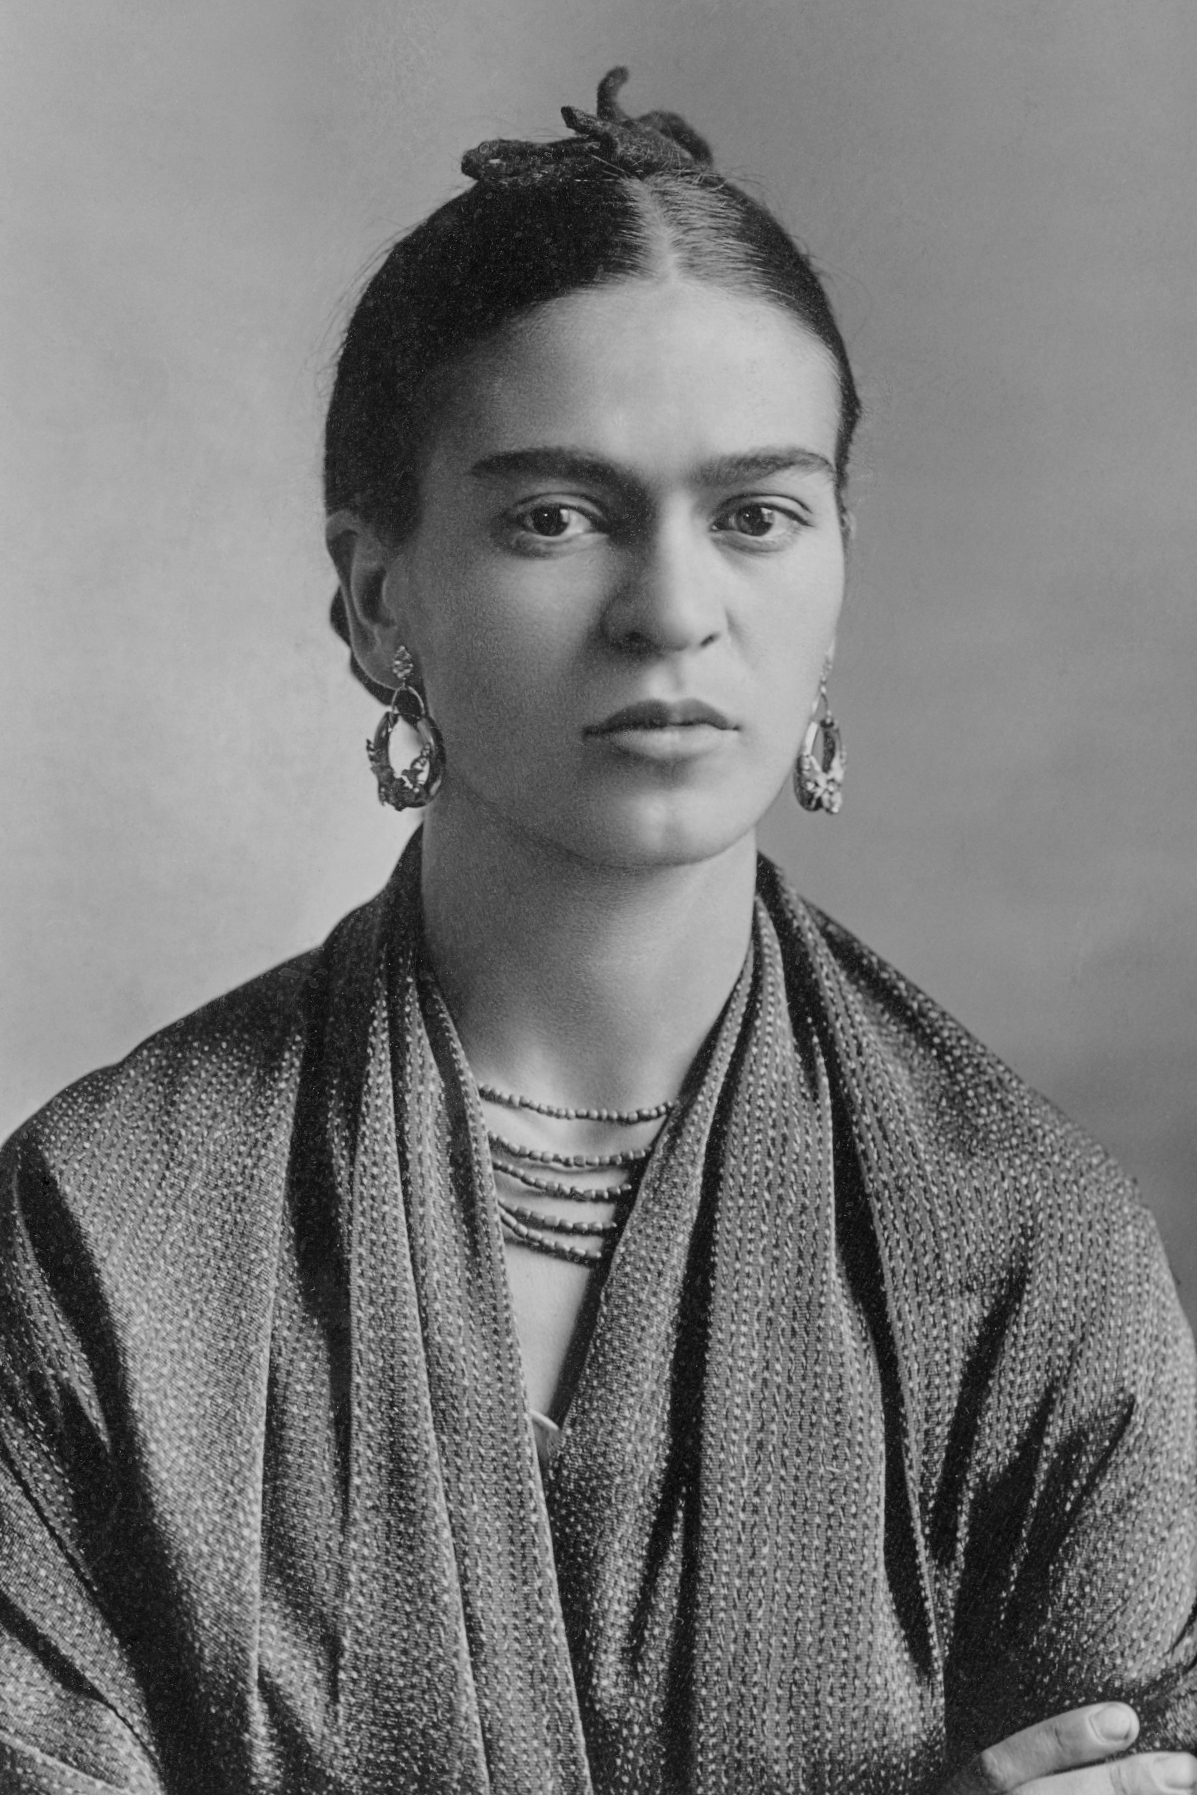 7 Frida Kahlo Quotes To Inspire Artists on Jung Katz Art Blog